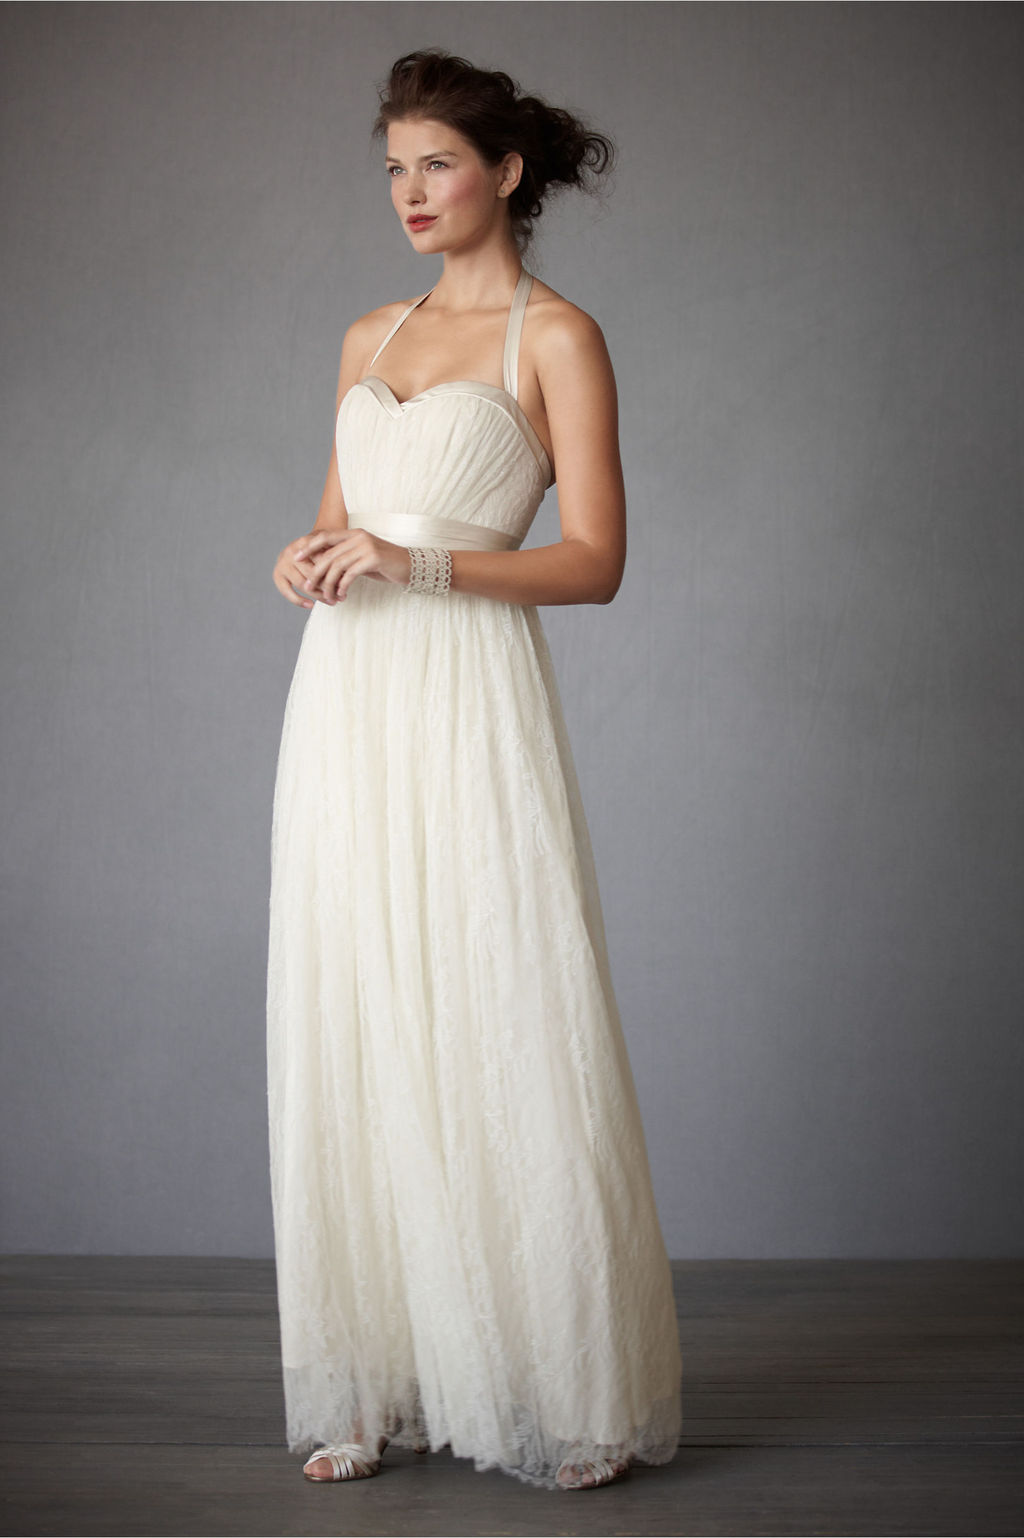 Halter-wedding-dress-ivory-2012-bhldn-bridal-gowns.full